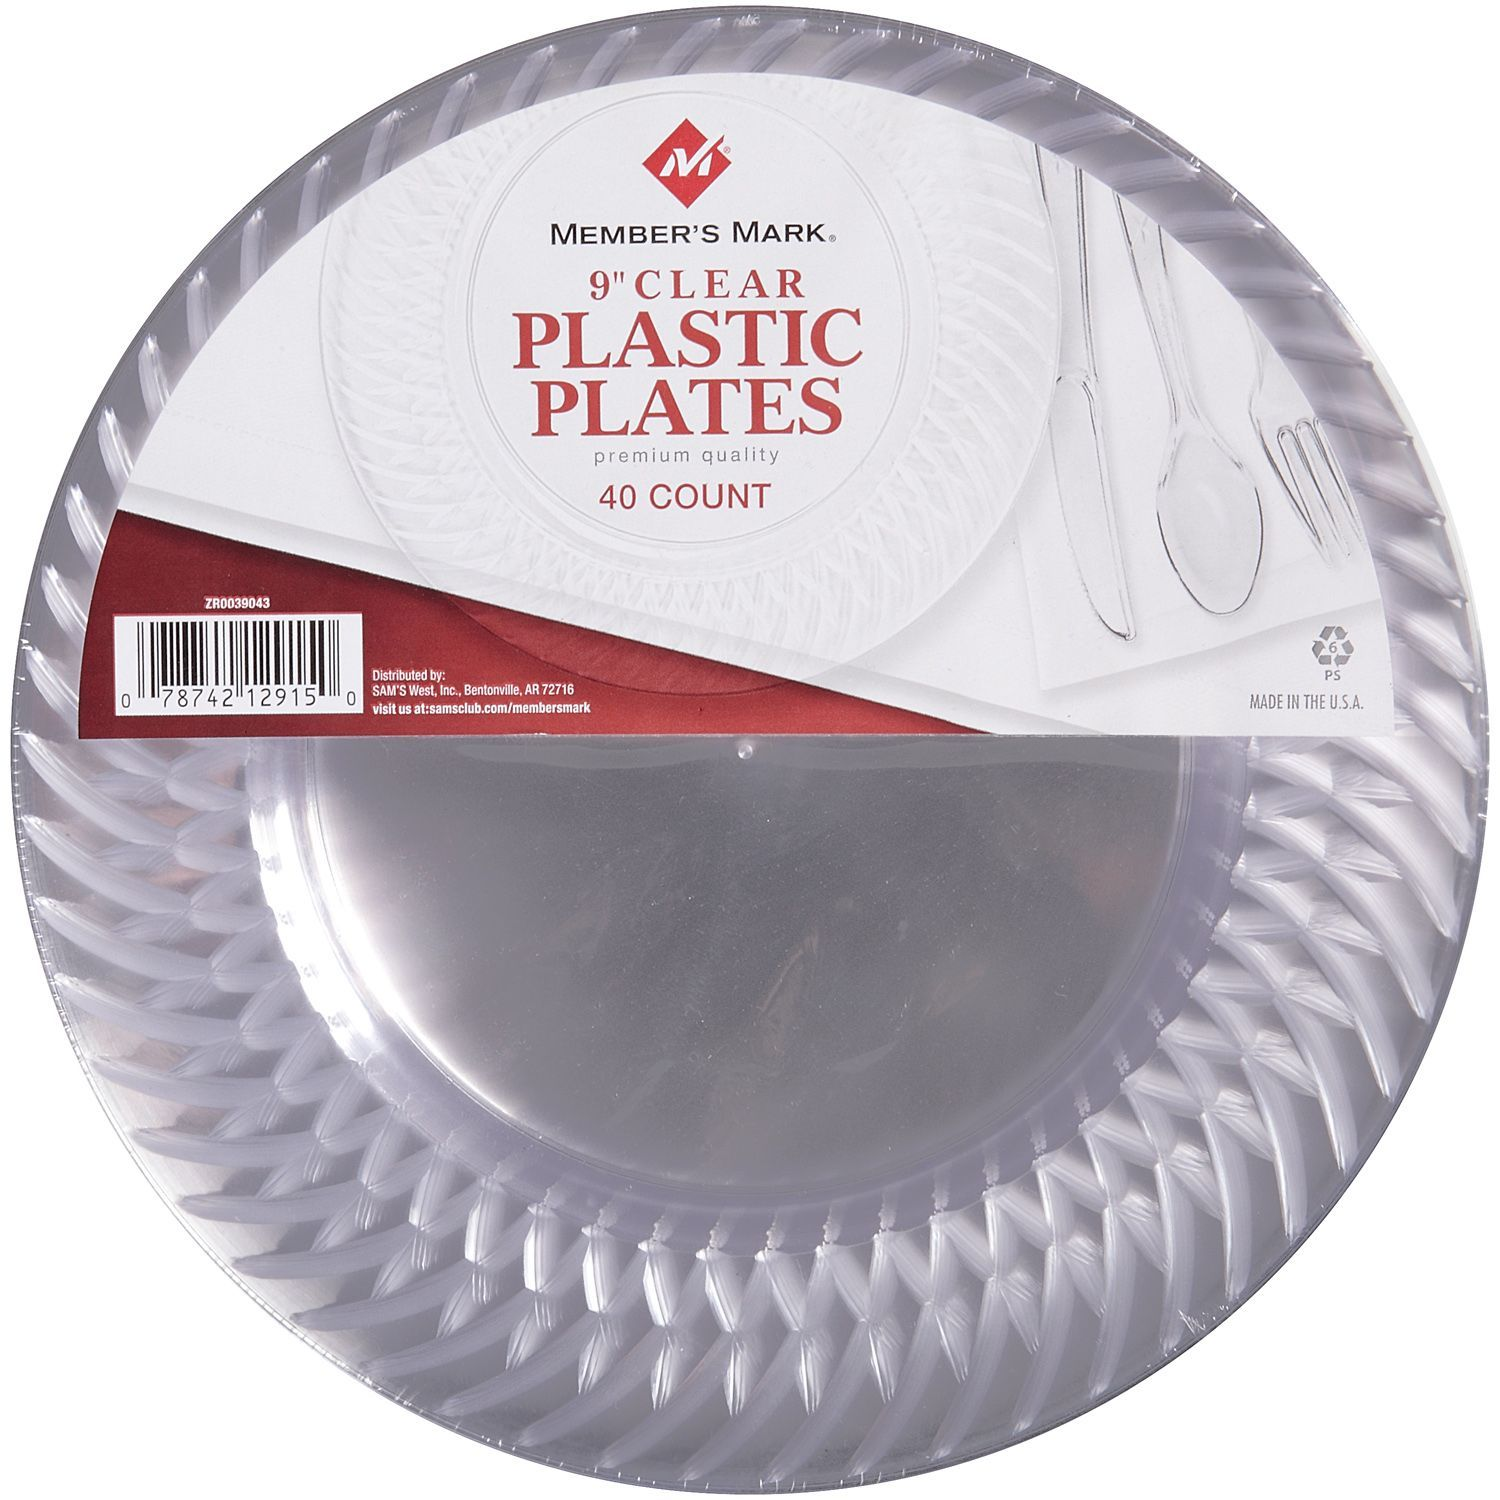 Members Mark Clear Plastic Plates 9 40 ct Sams Club